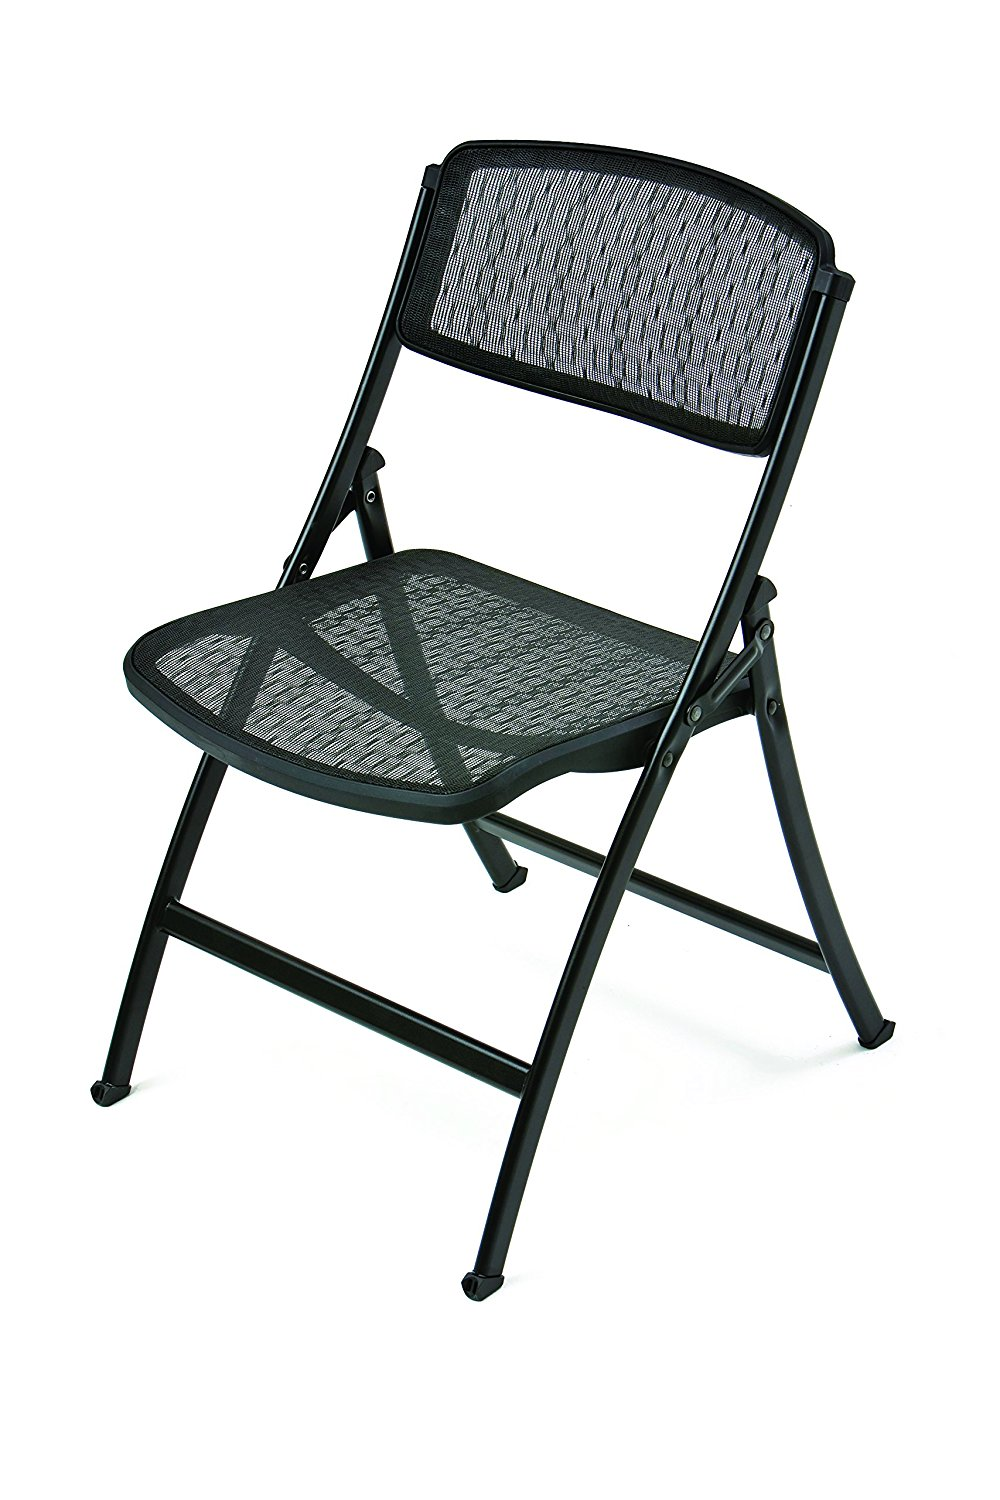 Magnificent Mity Lite Flex One Folding Chair Beatyapartments Chair Design Images Beatyapartmentscom